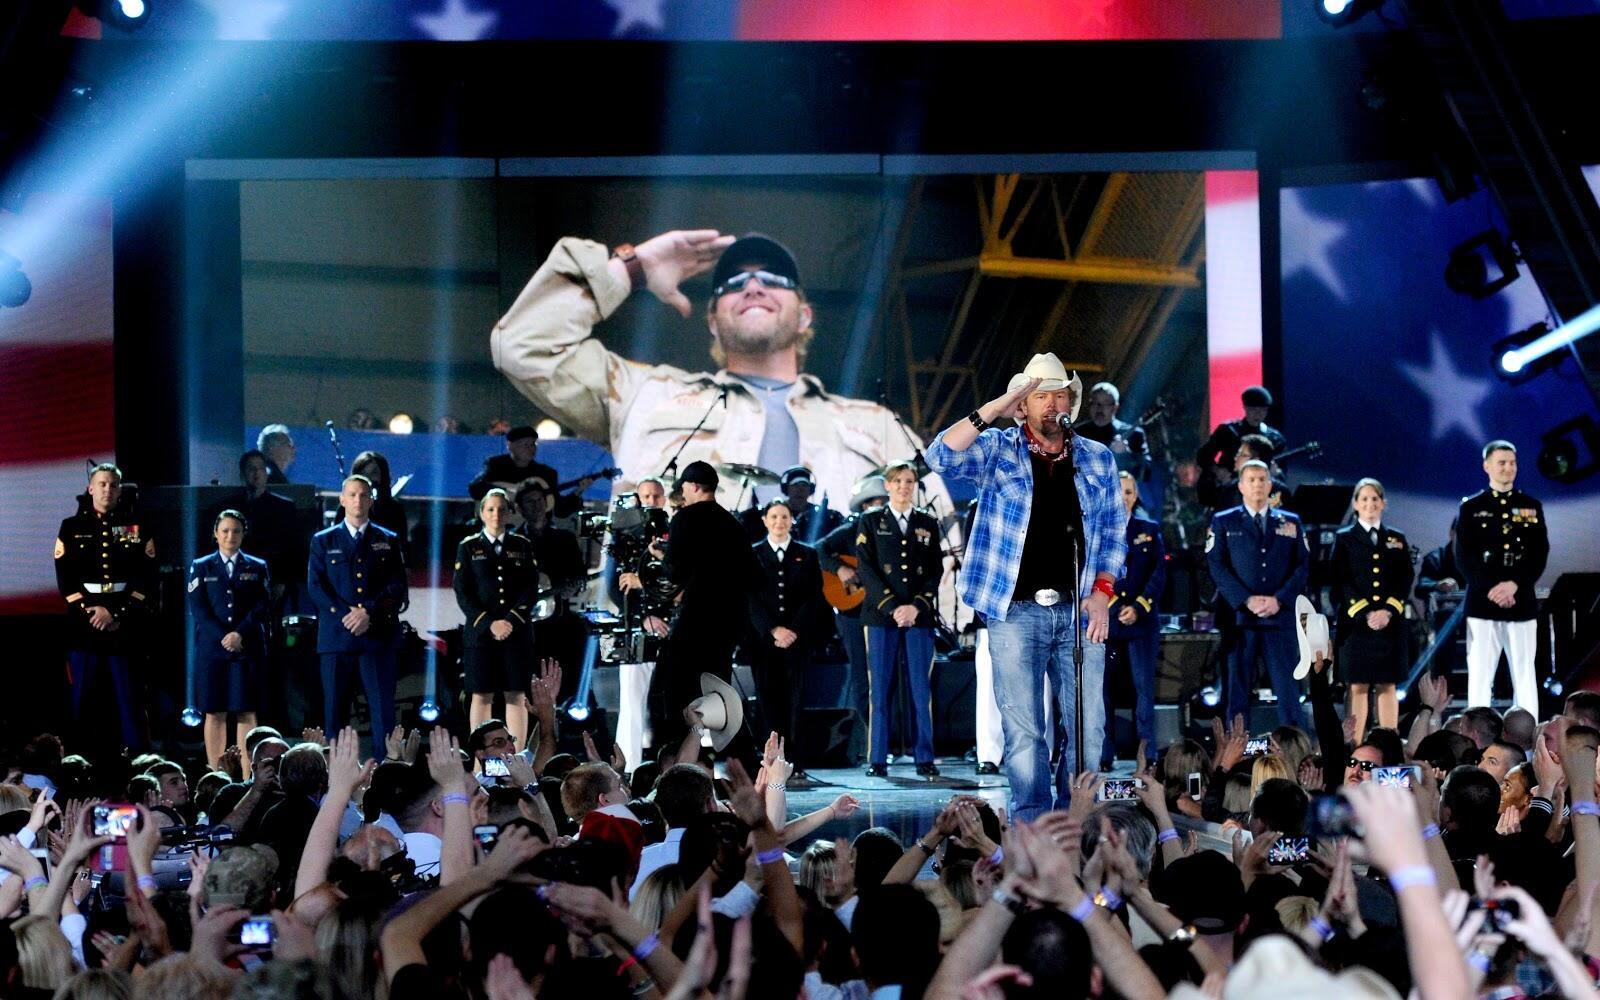 LAS VEGAS, NV - APRIL 07:  Recording artist Toby Keith performs onstage during ACM Presents: An All-Star Salute To The Troops at the MGM Grand Garden Arena on April 7, 2014 in Las Vegas, Nevada.  (Photo by Ethan Miller/Getty Images for ACM)